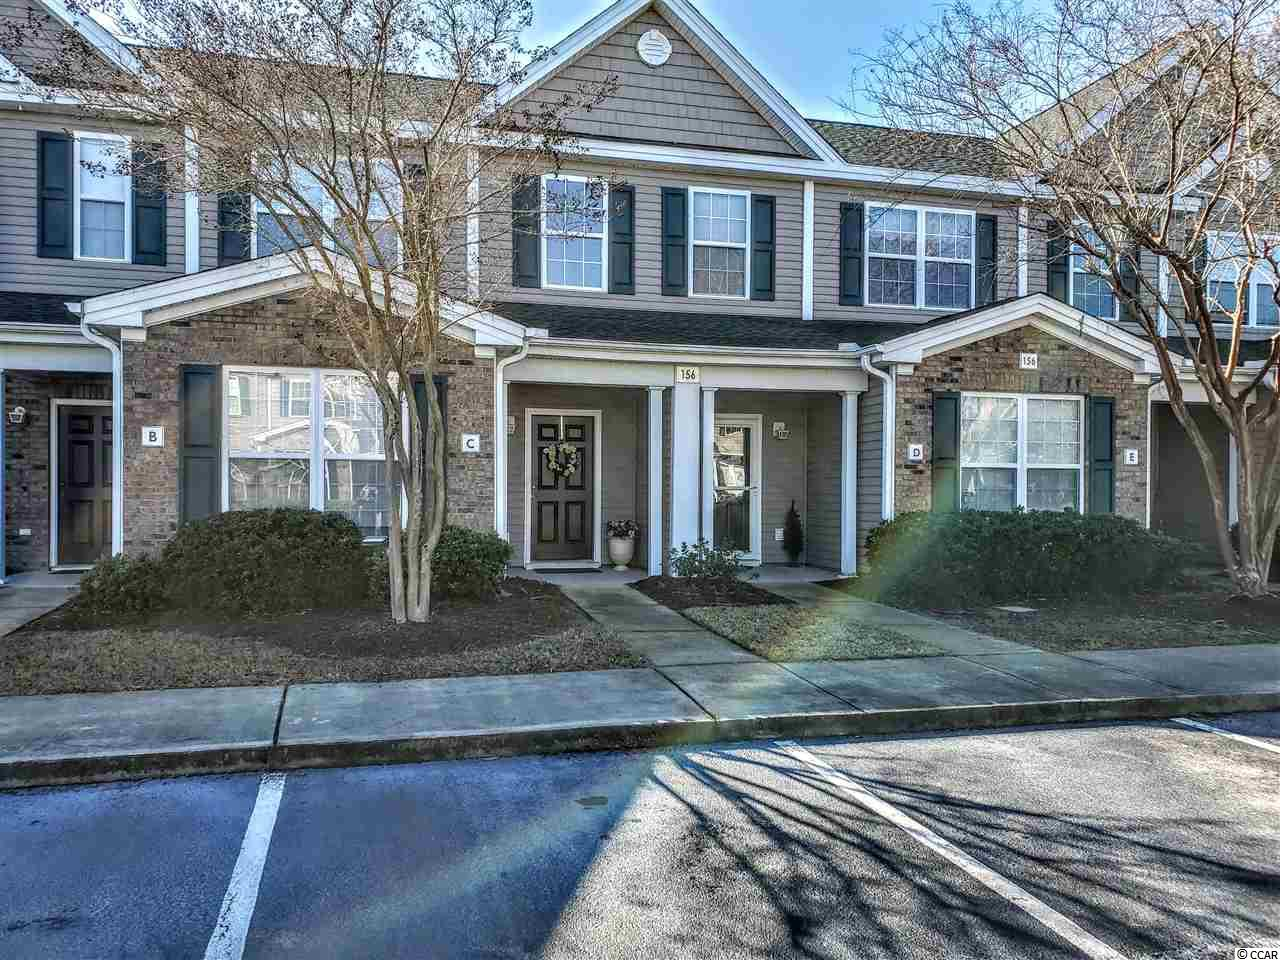 Peaceful and serene townhome in the sought-after neighborhood of Park West in Murrells Inlet. This townhome style condo isn't missing a thing! Lots of natural light and fully updated! Open concept kitchen and living area with two-story vaulted ceilings. Updated kitchen with granite countertops, stainless appliances and updated lighting. The pantry closet provides lots of extra kitchen storage. The first floor master bedroom has a walk-in closet and private bath with a large walk-in shower. The first floor also includes a powder room, hall closet and laundry facilities. The washer/dryer and refrigerator are included! The first floor flooring has been updated with easy-care laminate. The second floor includes a good size guest bedroom, a full bathroom and a loft, which can be used as a second living area,  additional sleeping, or office space. The HVAC unit has been recently replaced, and the air handler is easily accessed in the back closet upstairs. The back screen porch is a perfect place to relax for morning coffee or an evening glass of wine - with the calming sounds of the nearby pond fountain. The buildings in this complex are very well-maintained by the HOA, as is the landscaping. The roof was just replaced in 2020. This condo is just a short walk to the large neighborhood pool and hot tub. Park West is located in Murrells Inlet, just a short distance to the famous Marshwalk, and close to shopping and Brookgreen Gardens and of course, the beach! Come see this creampuff for yourself! Square footage is approximate and not guaranteed, Buyer is responsible for verification.